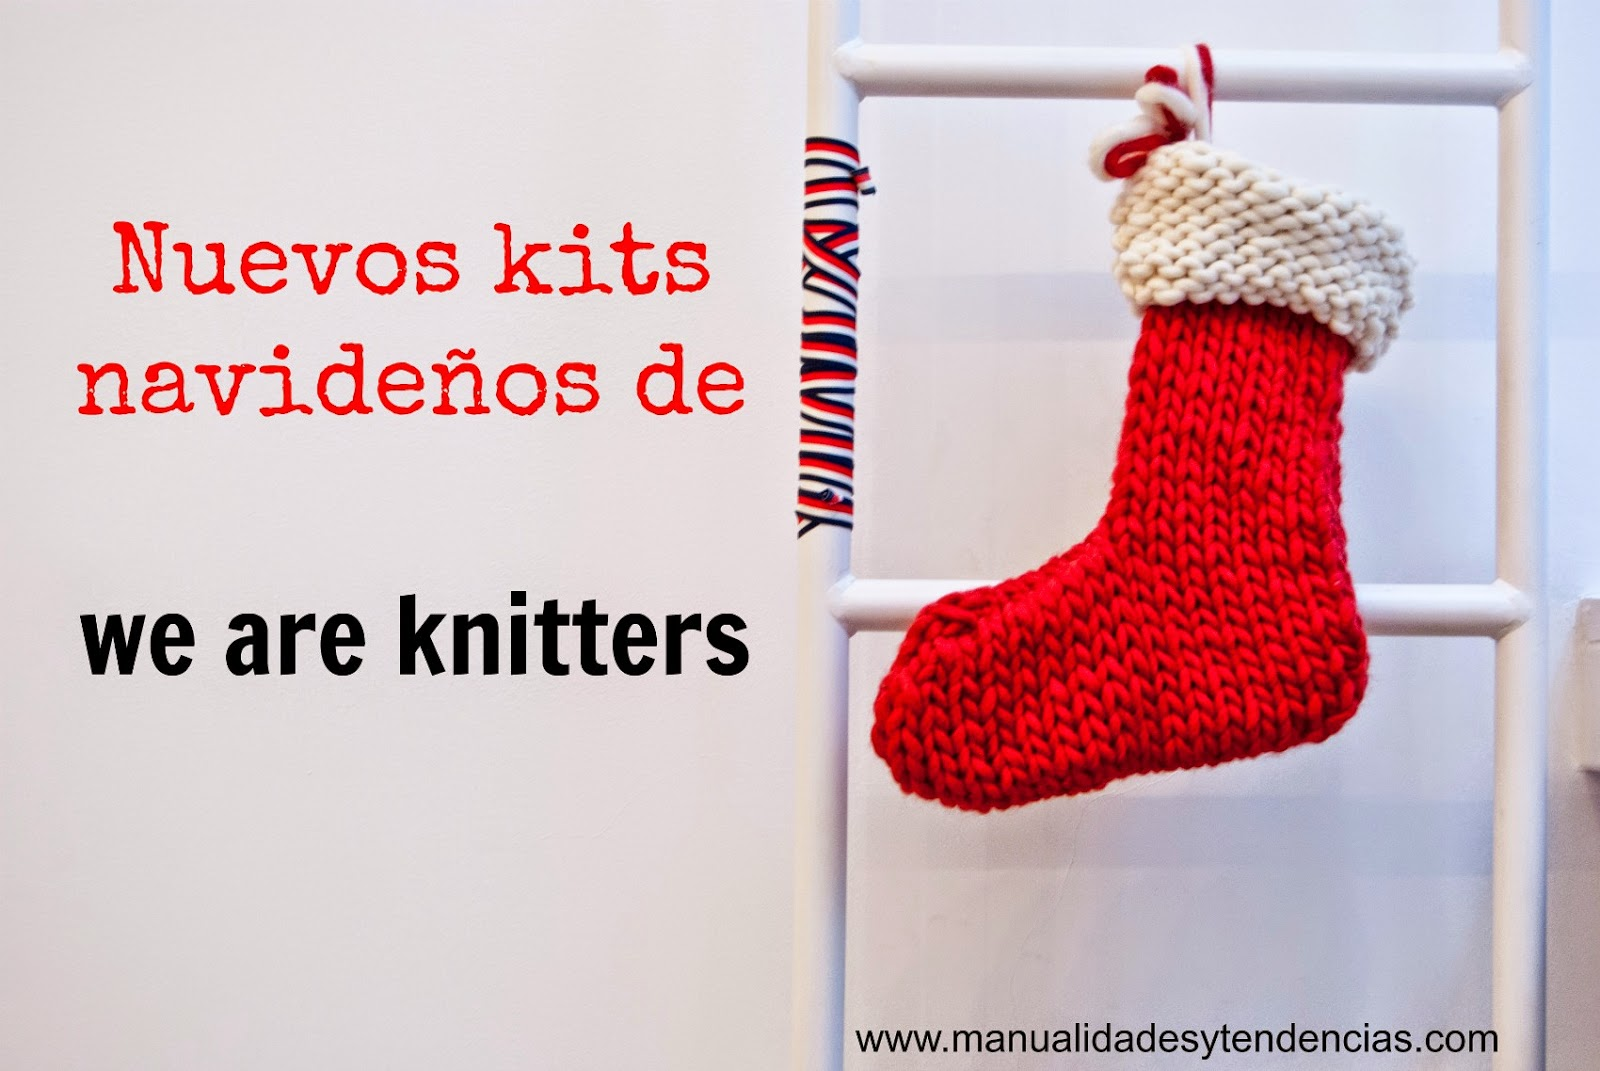 Kits navideños de We are knitters